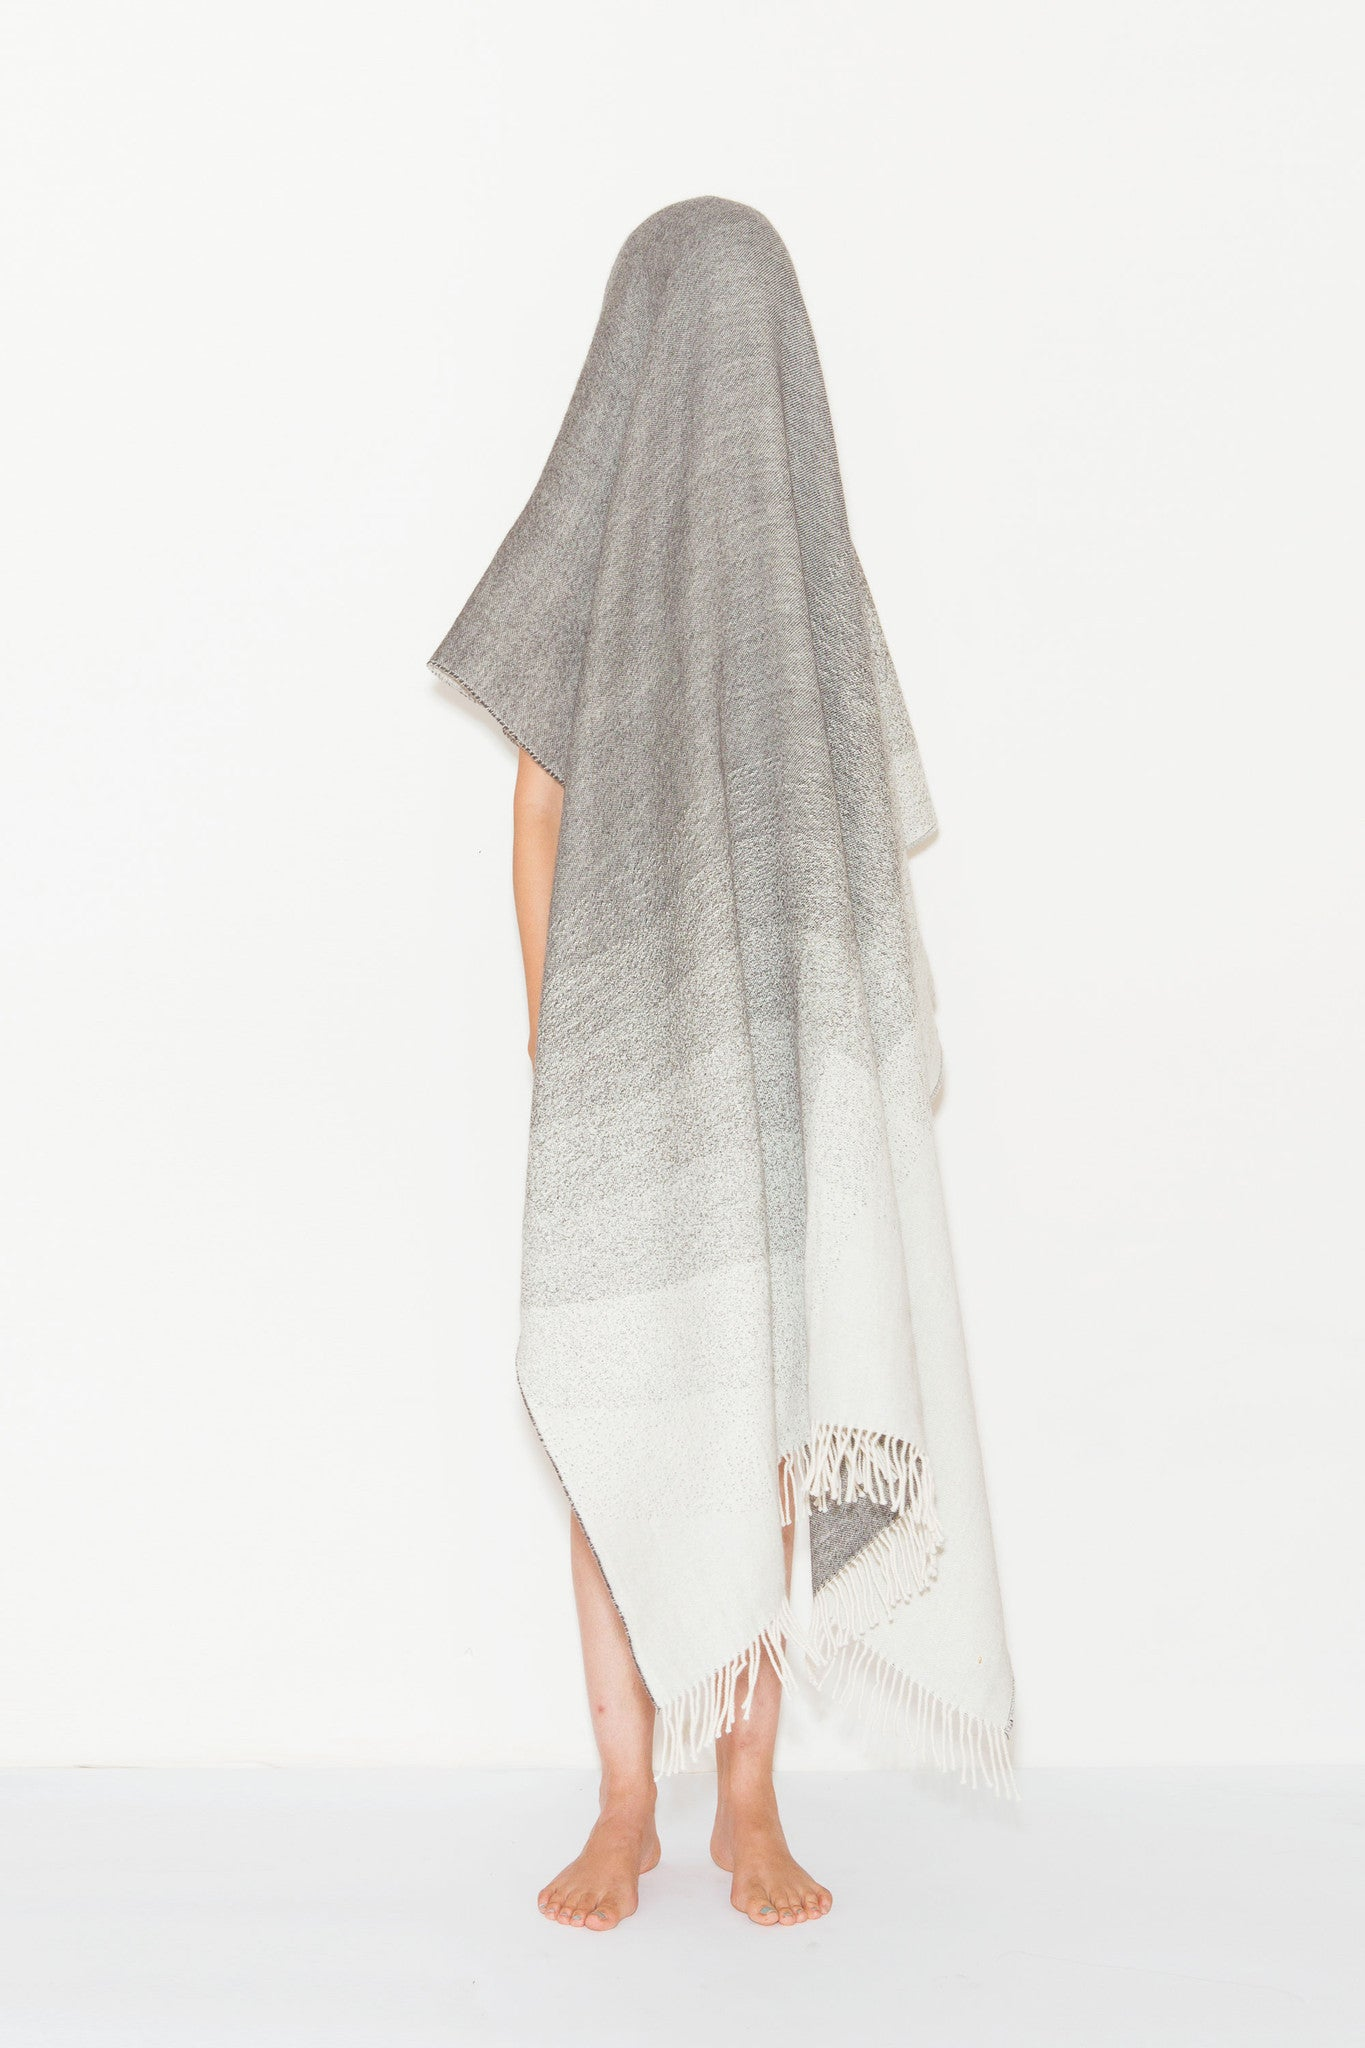 Meda Scarf is an oversized merino wool/cashmere blend made from baby alpaca by A Peace Treaty